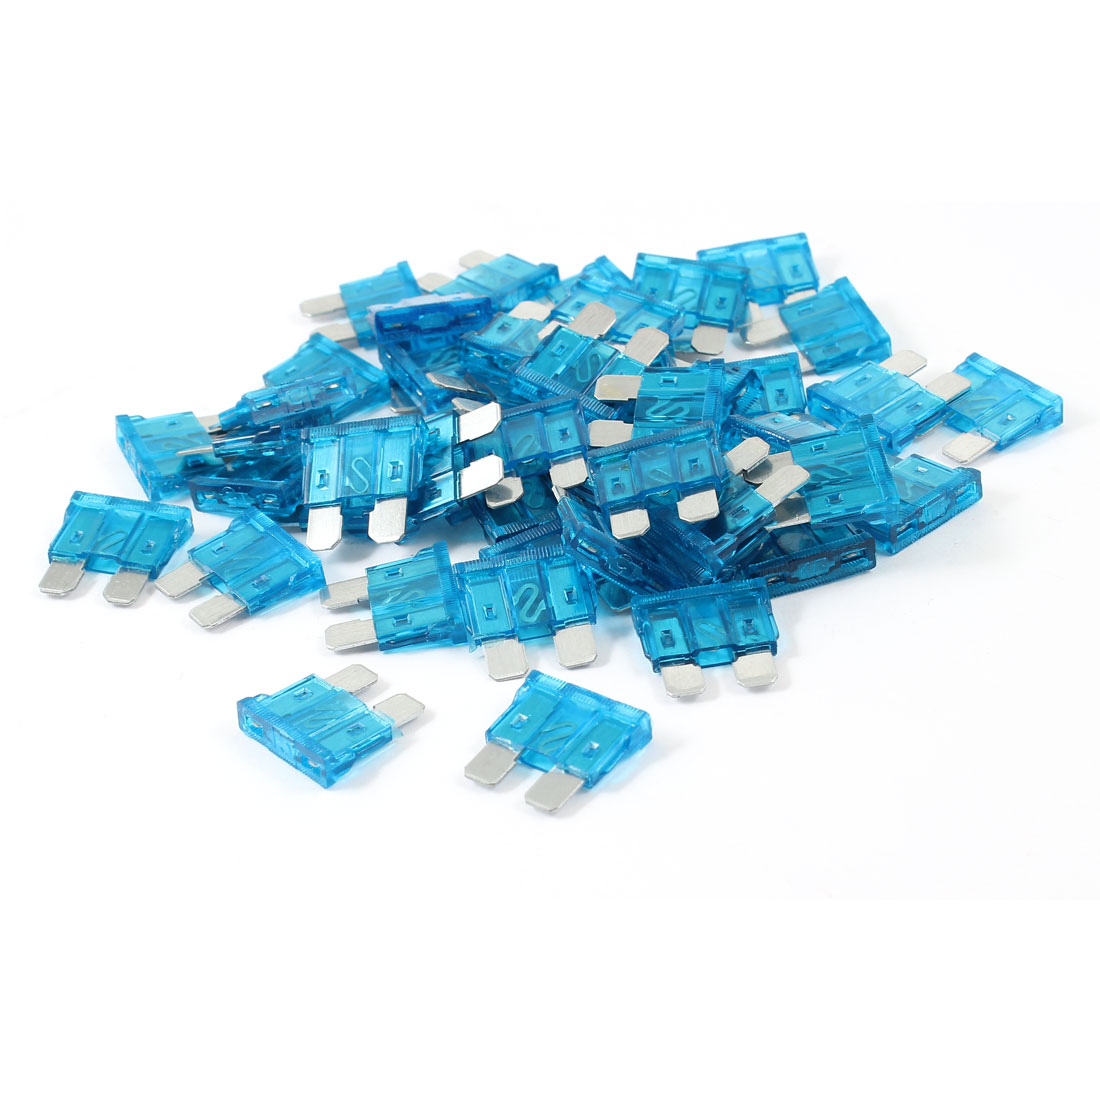 15A Plastic Housing Auto Car Motorcycle Flat Blade Fuse Blue 50pcs